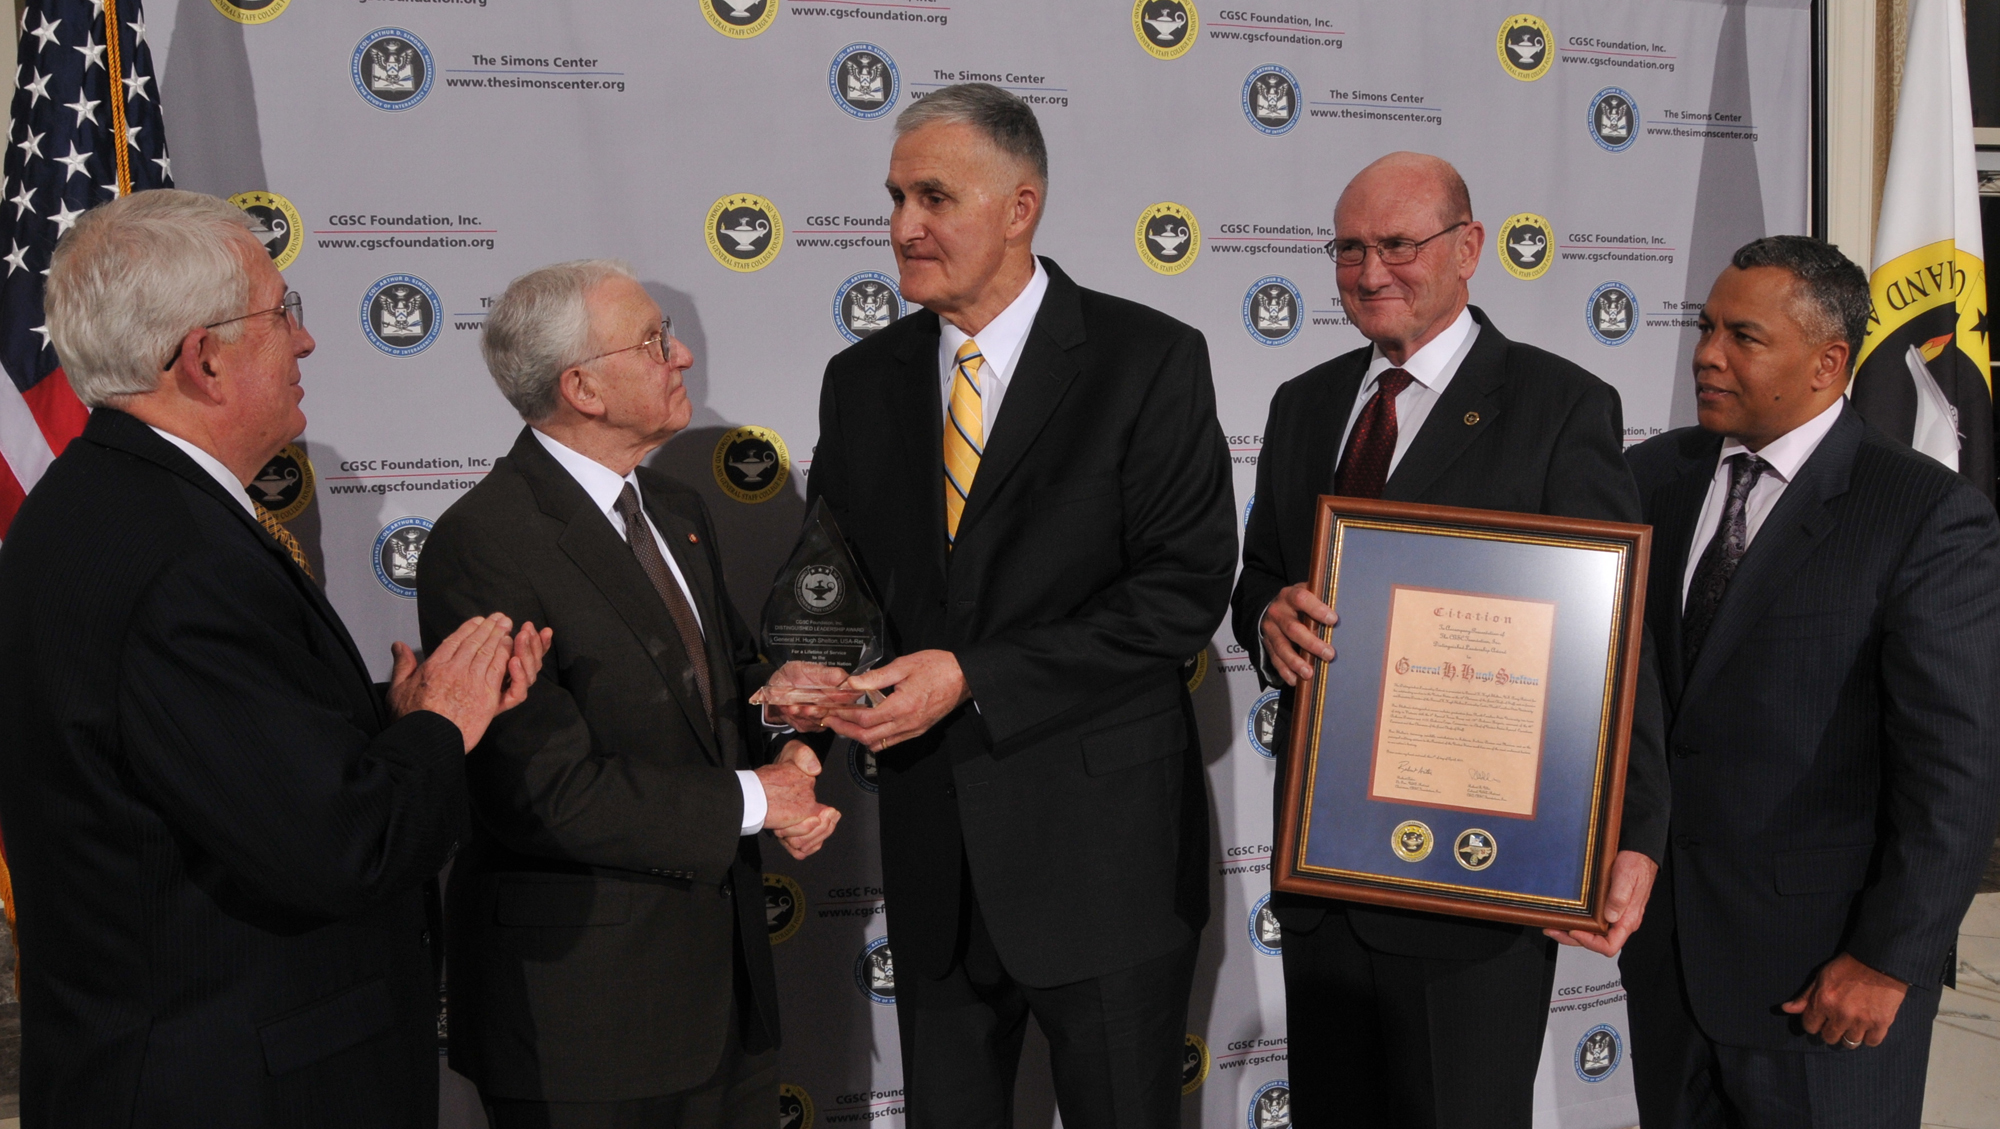 General Hugh Shelton receives the CGSC Foundation's 2011 Distinguished Leadership Award